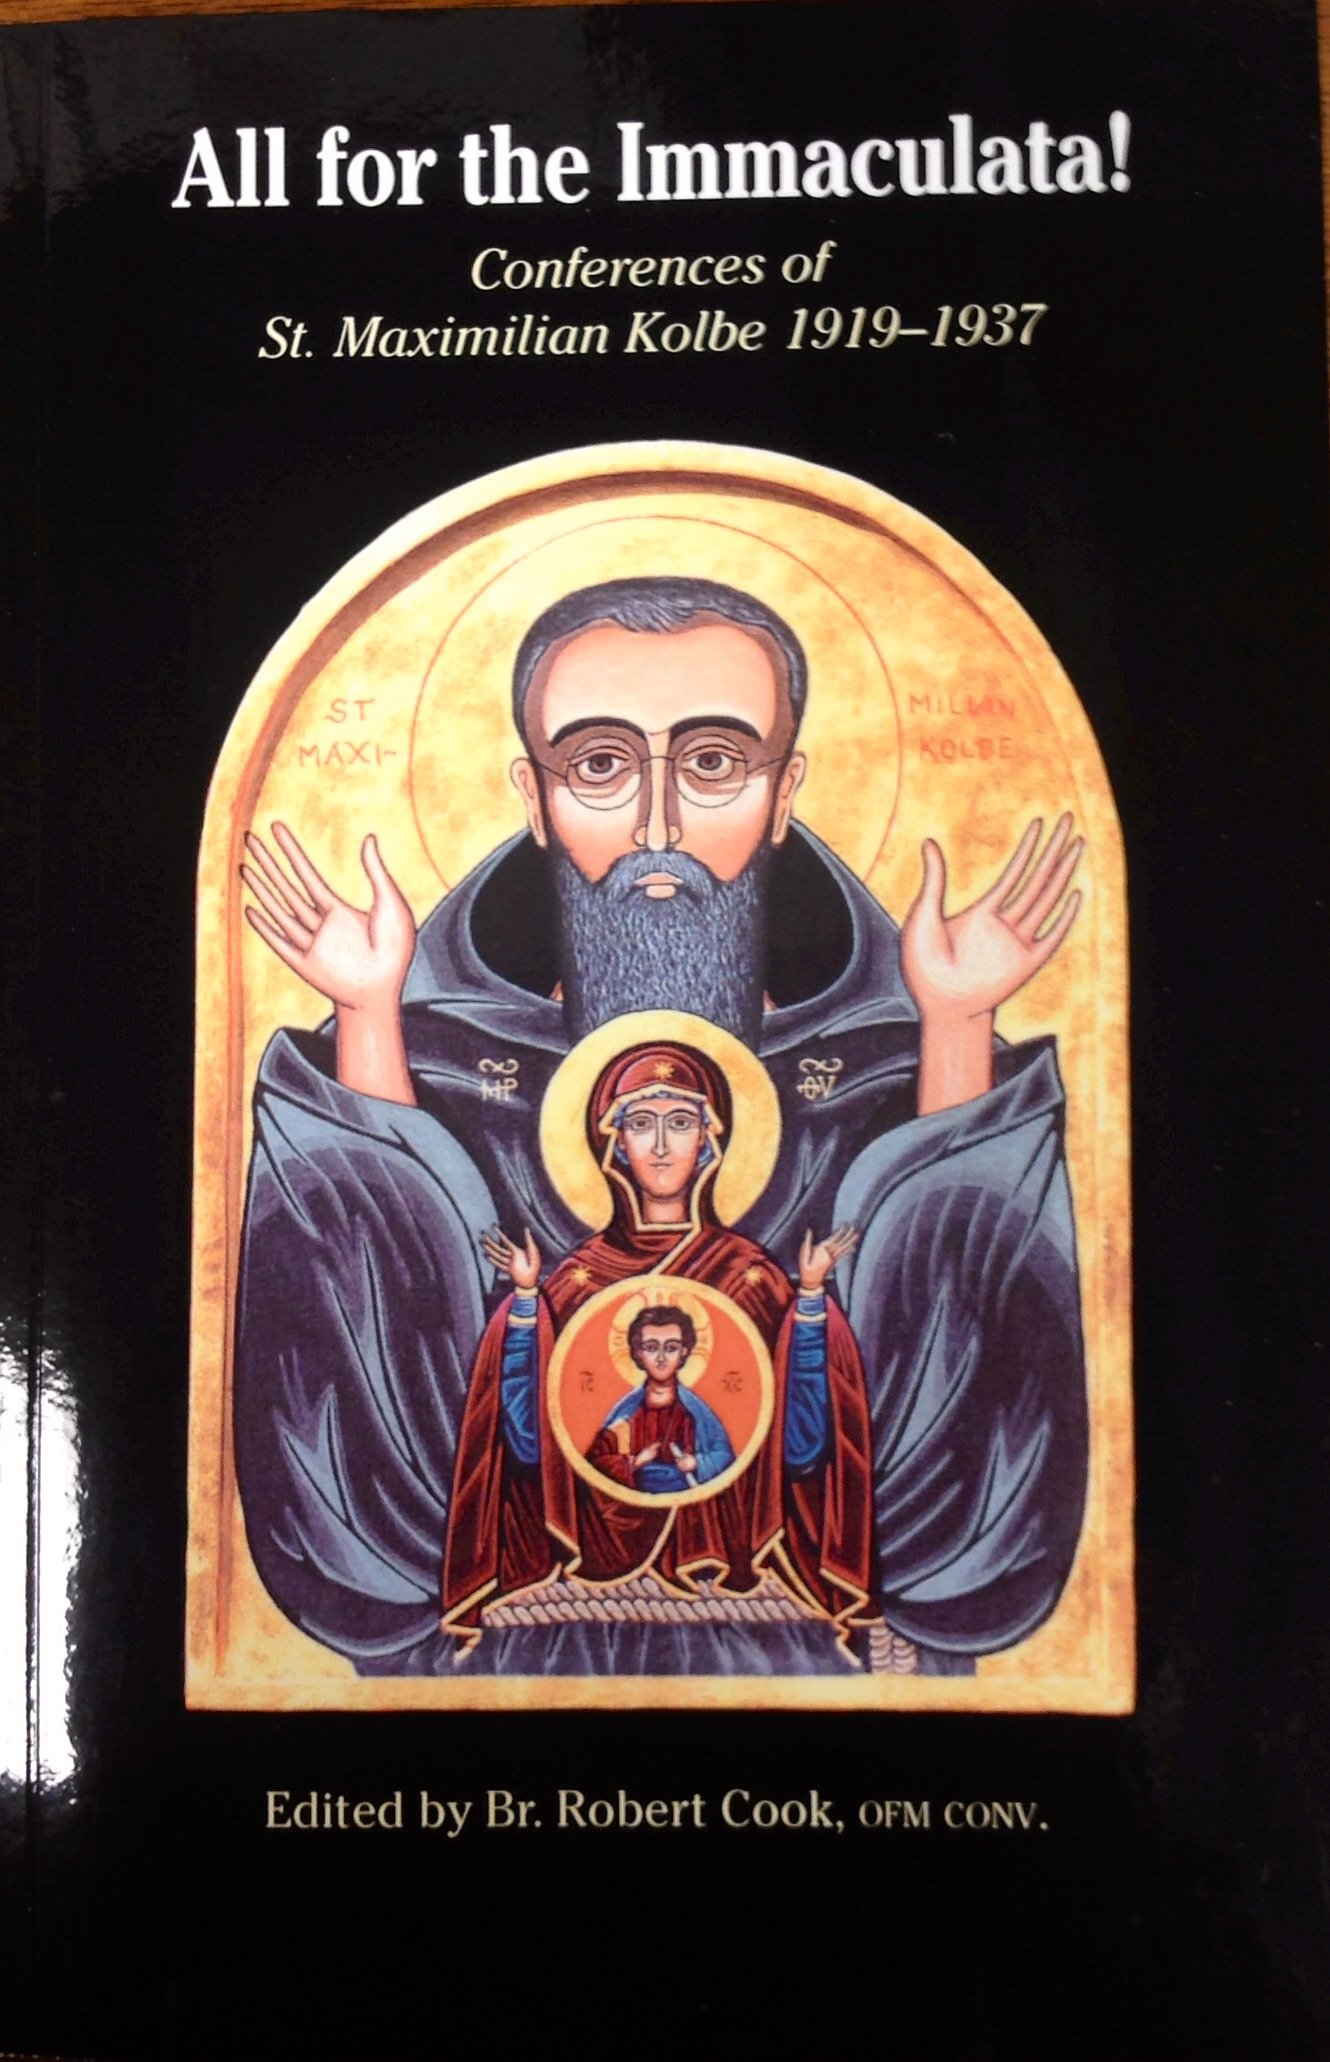 Download All for the Immaculata! Conferences of St. Maximilian Kolbe 1919-1937 PDF ePub fb2 book